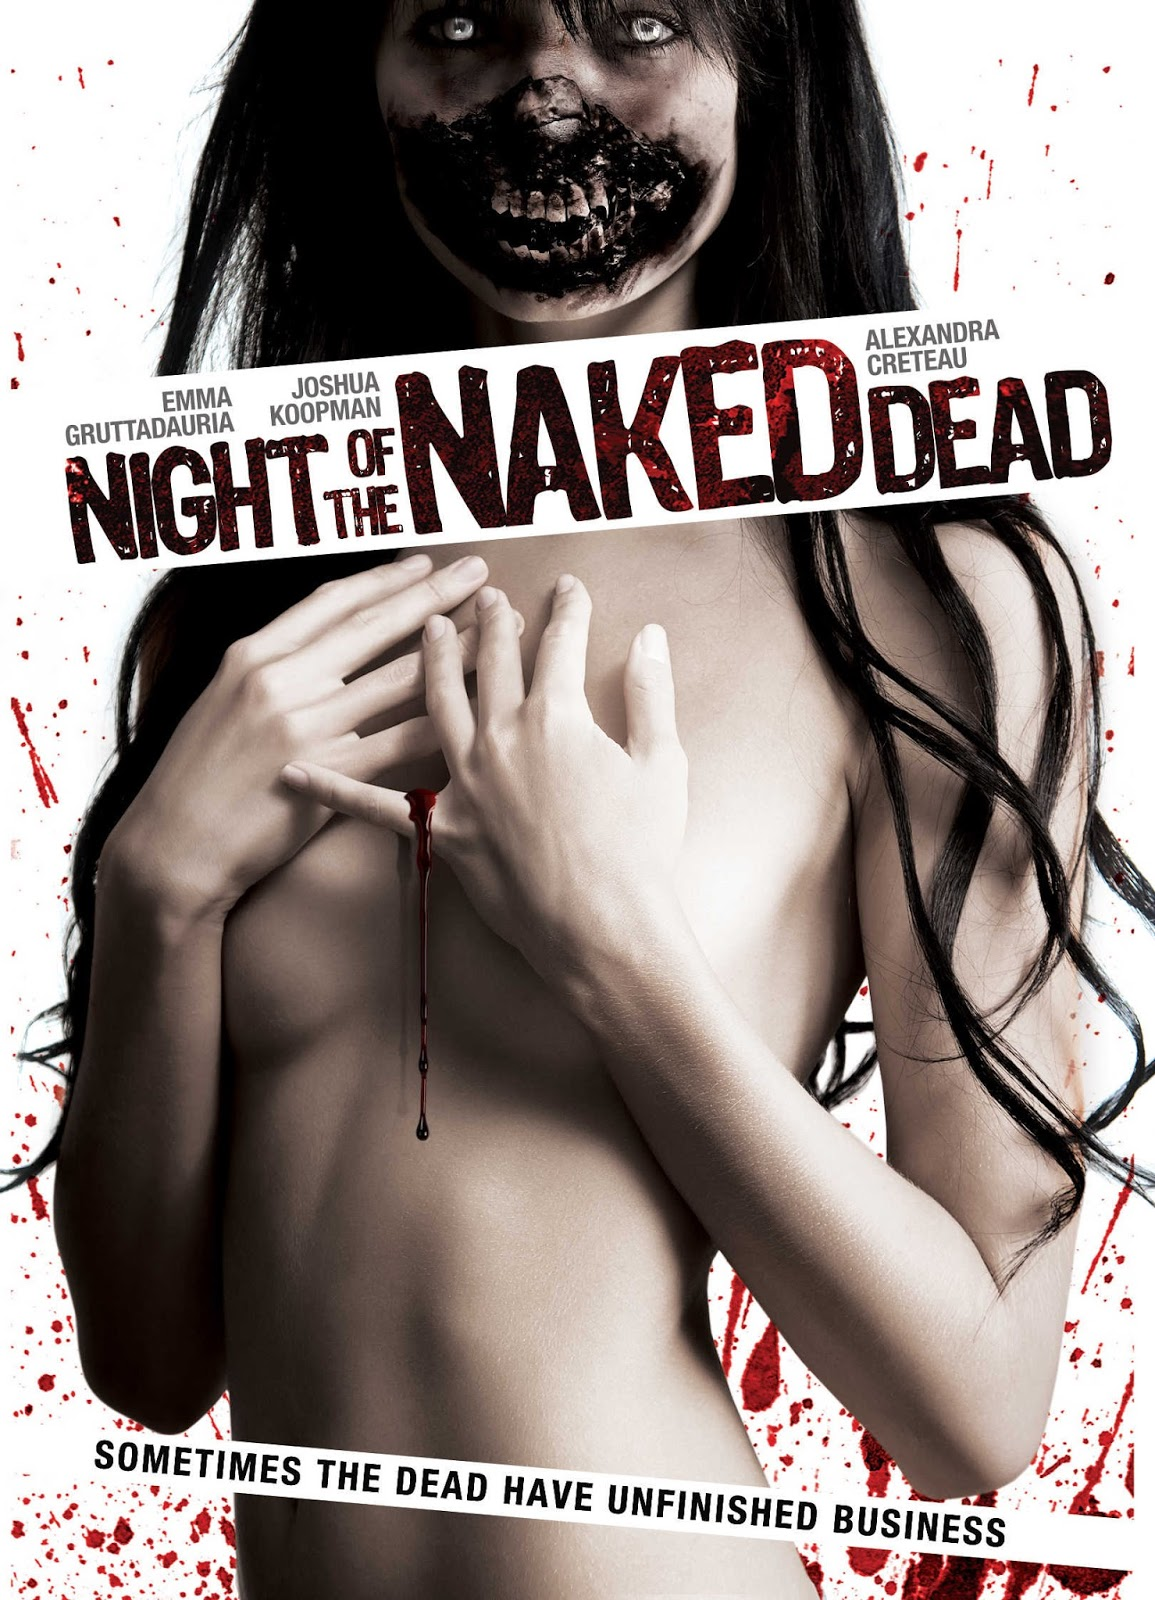 Naked dead movie nsfw videos